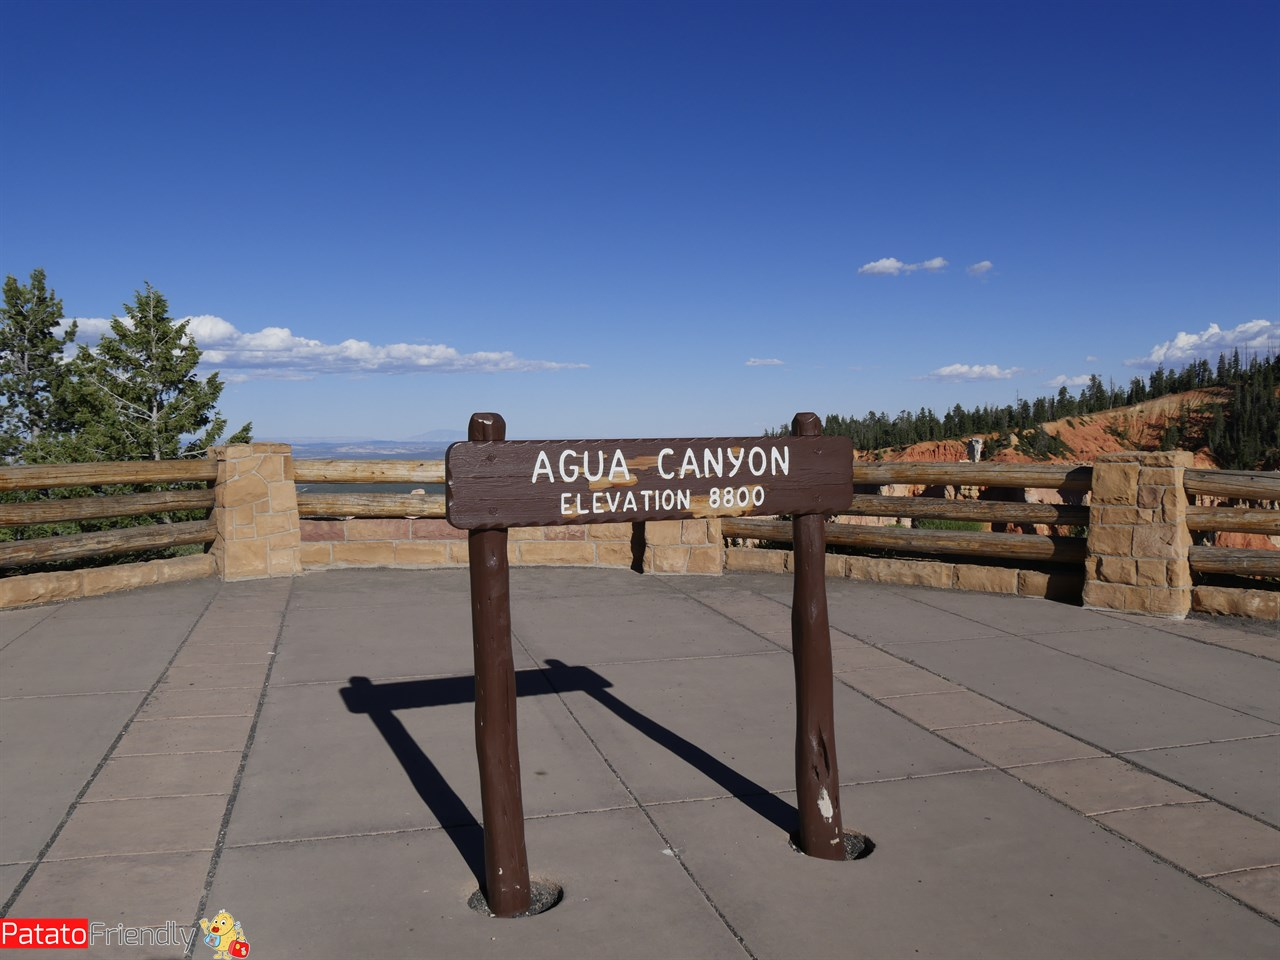 [cml_media_alt id='12068']I punti panoramici del Bryce Canyon - Agua[/cml_media_alt]